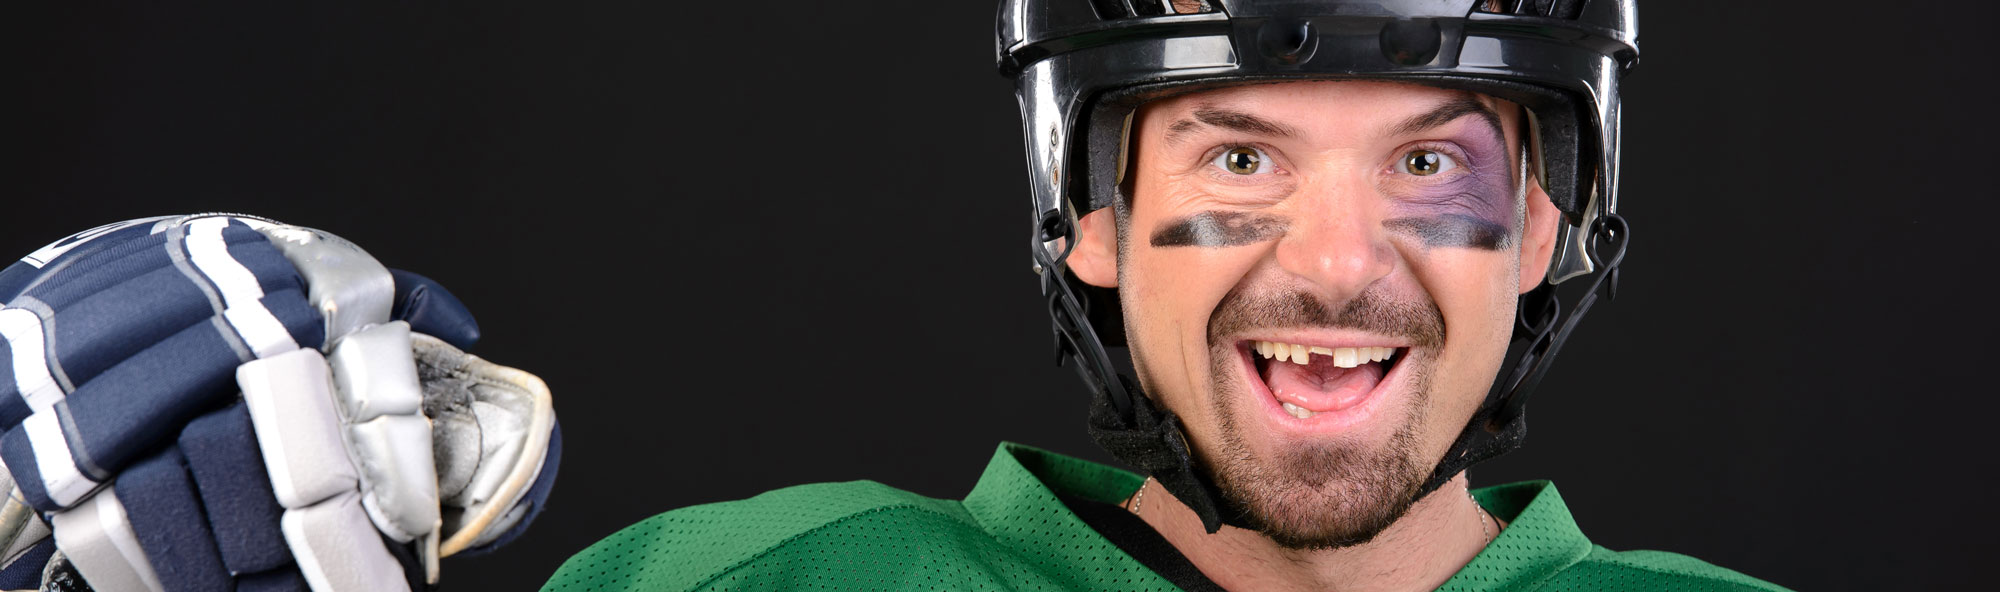 hockey player missing a tooth and smiling